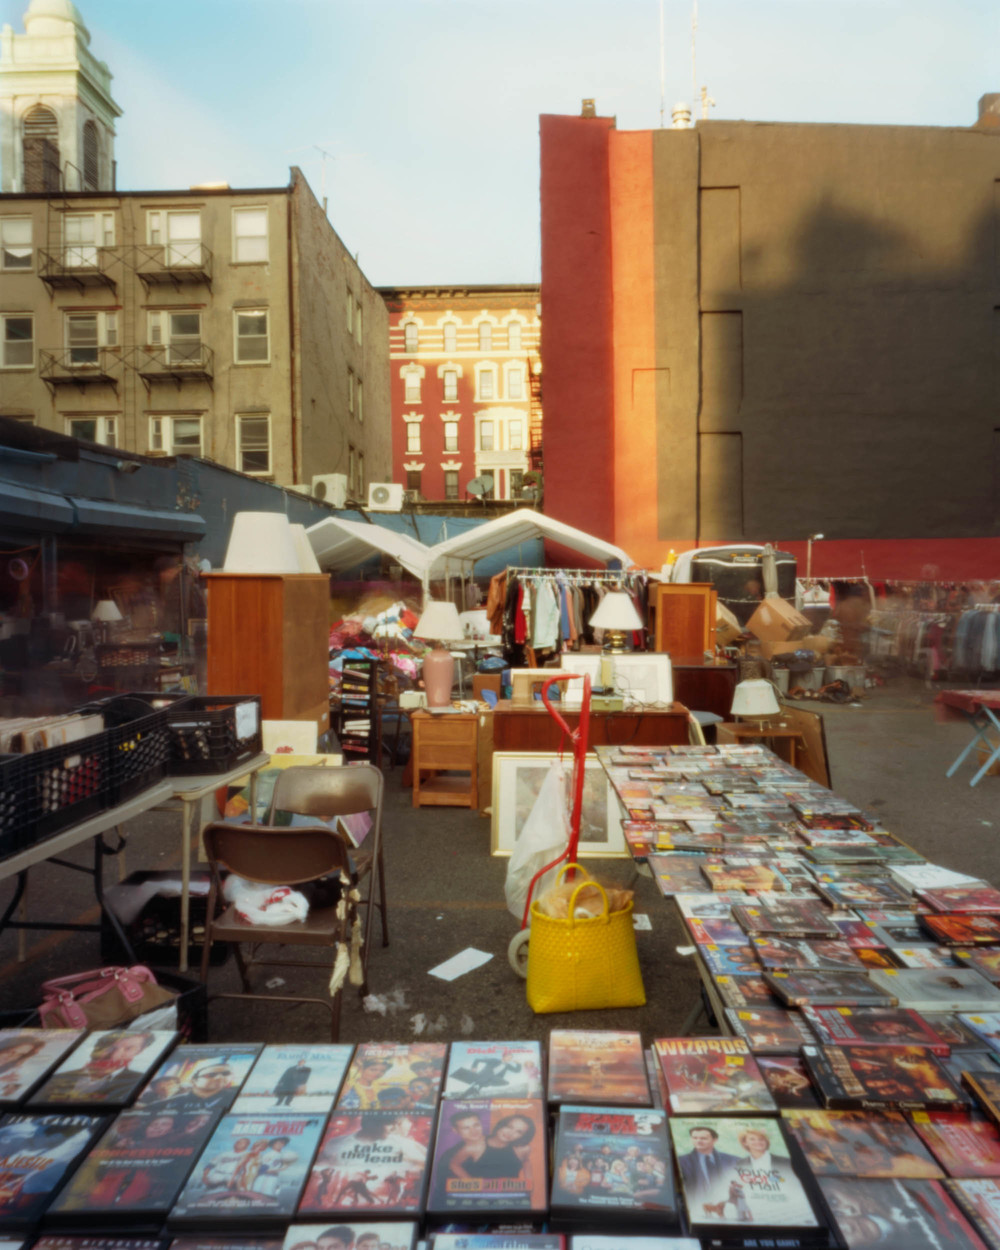 Marasco_Flea_Market_Avenue_A_&_East_11th_Streets.jpg